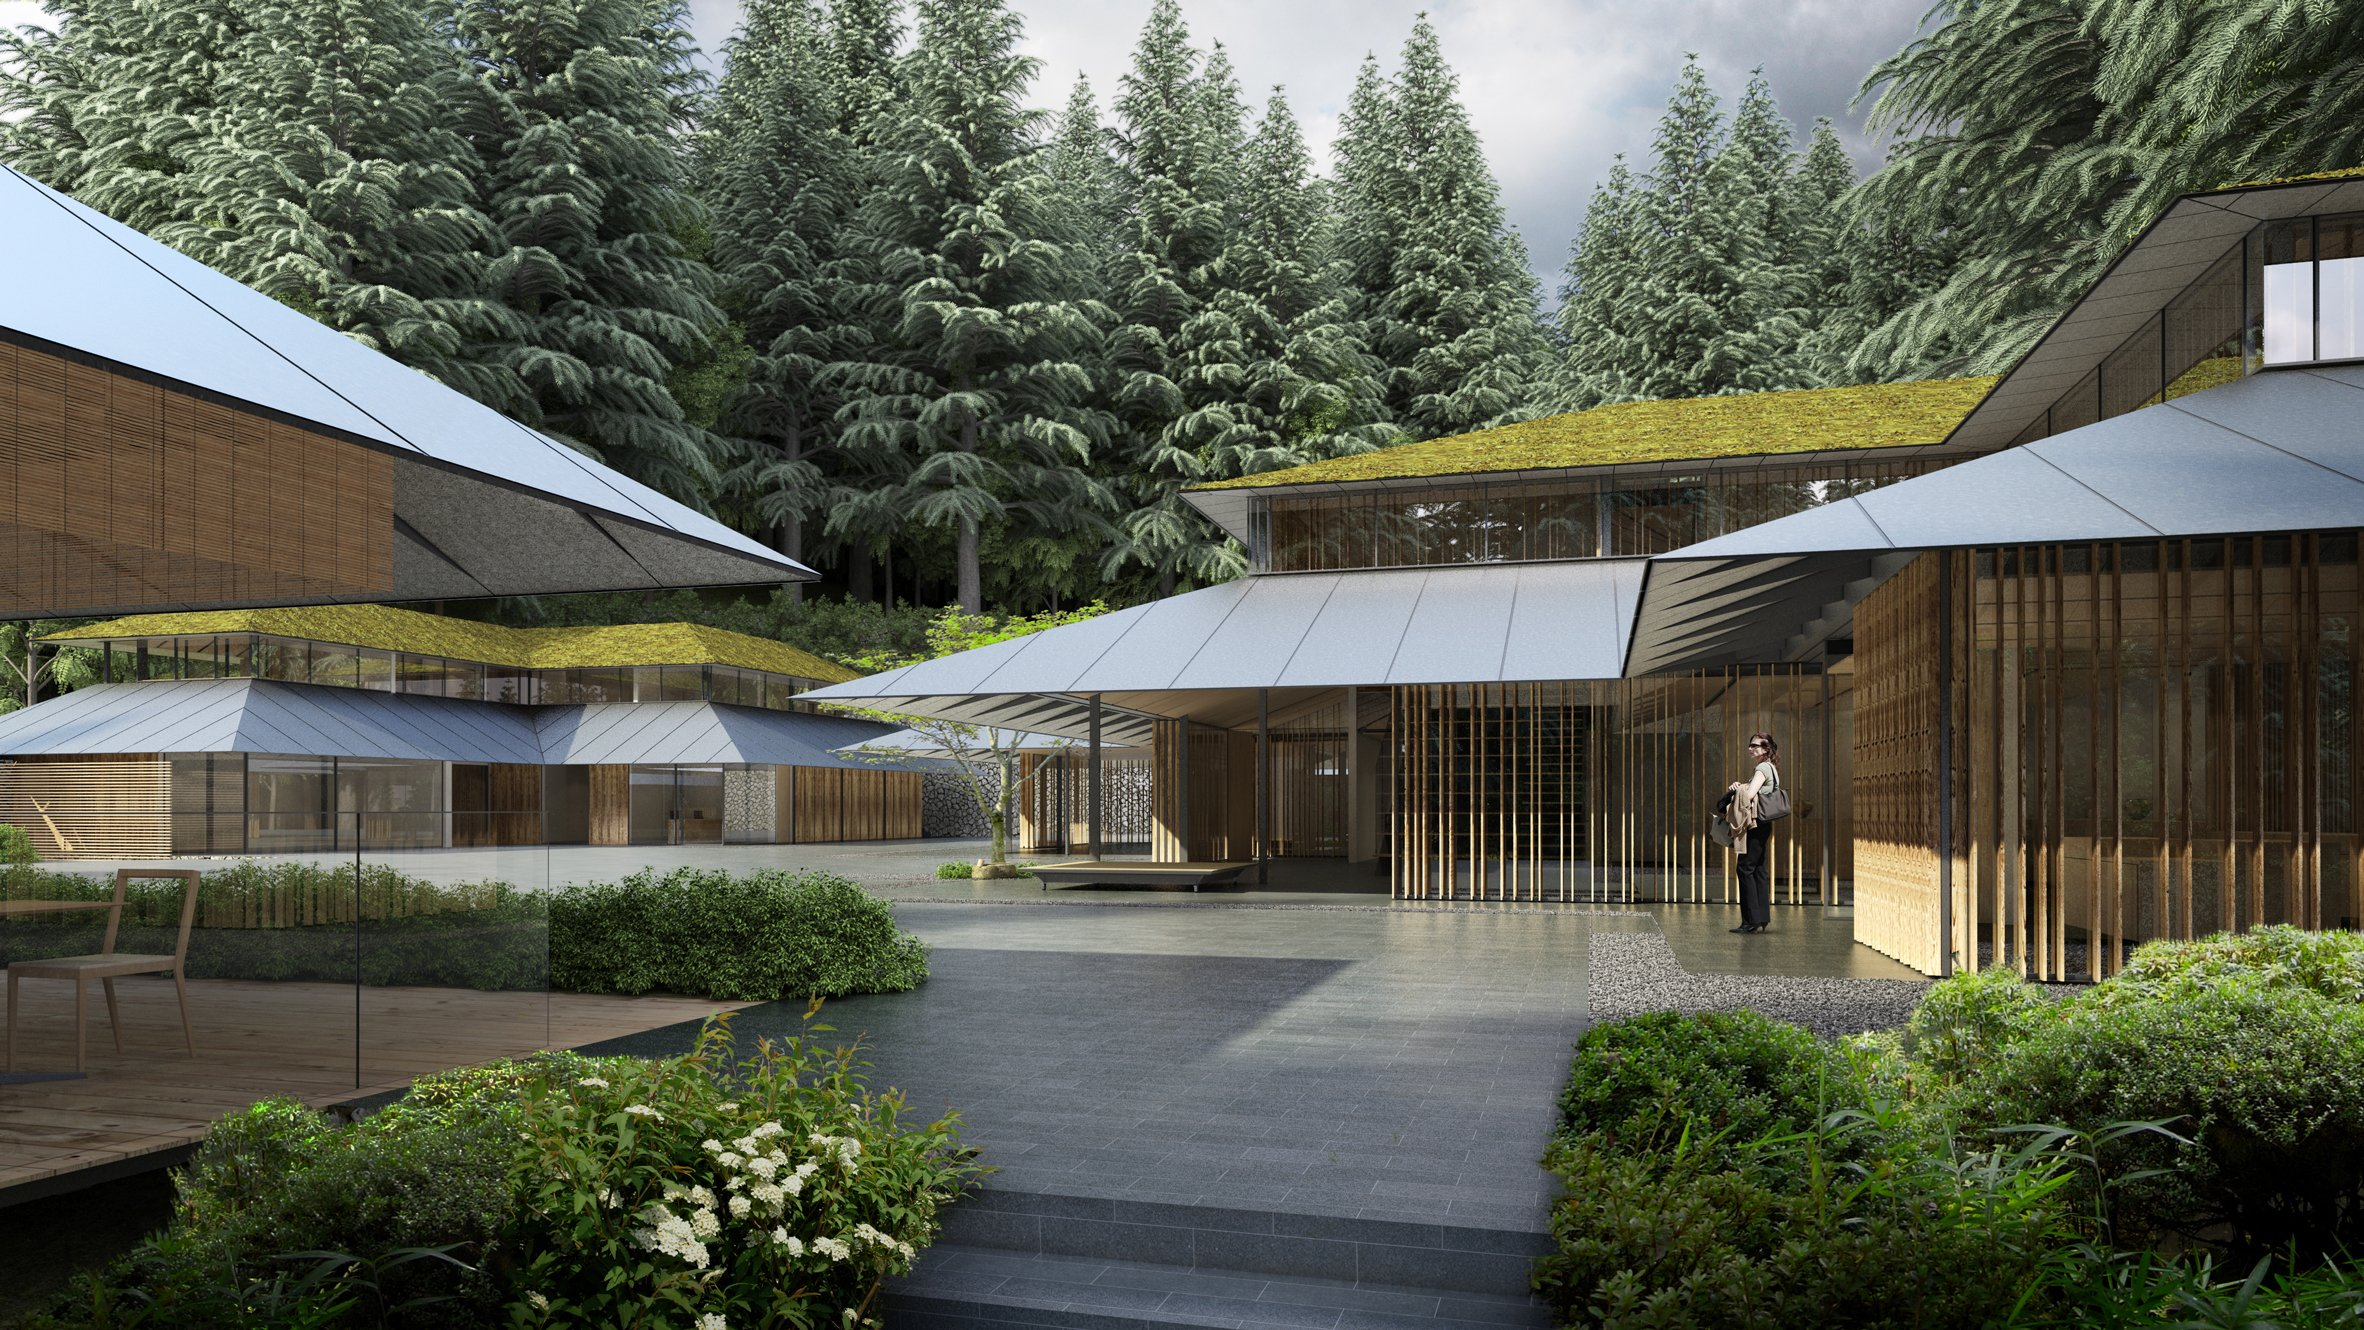 Exceptionnel Kengo Kumau0027s Expansion Of Portland Japanese Garden Set To Open In April